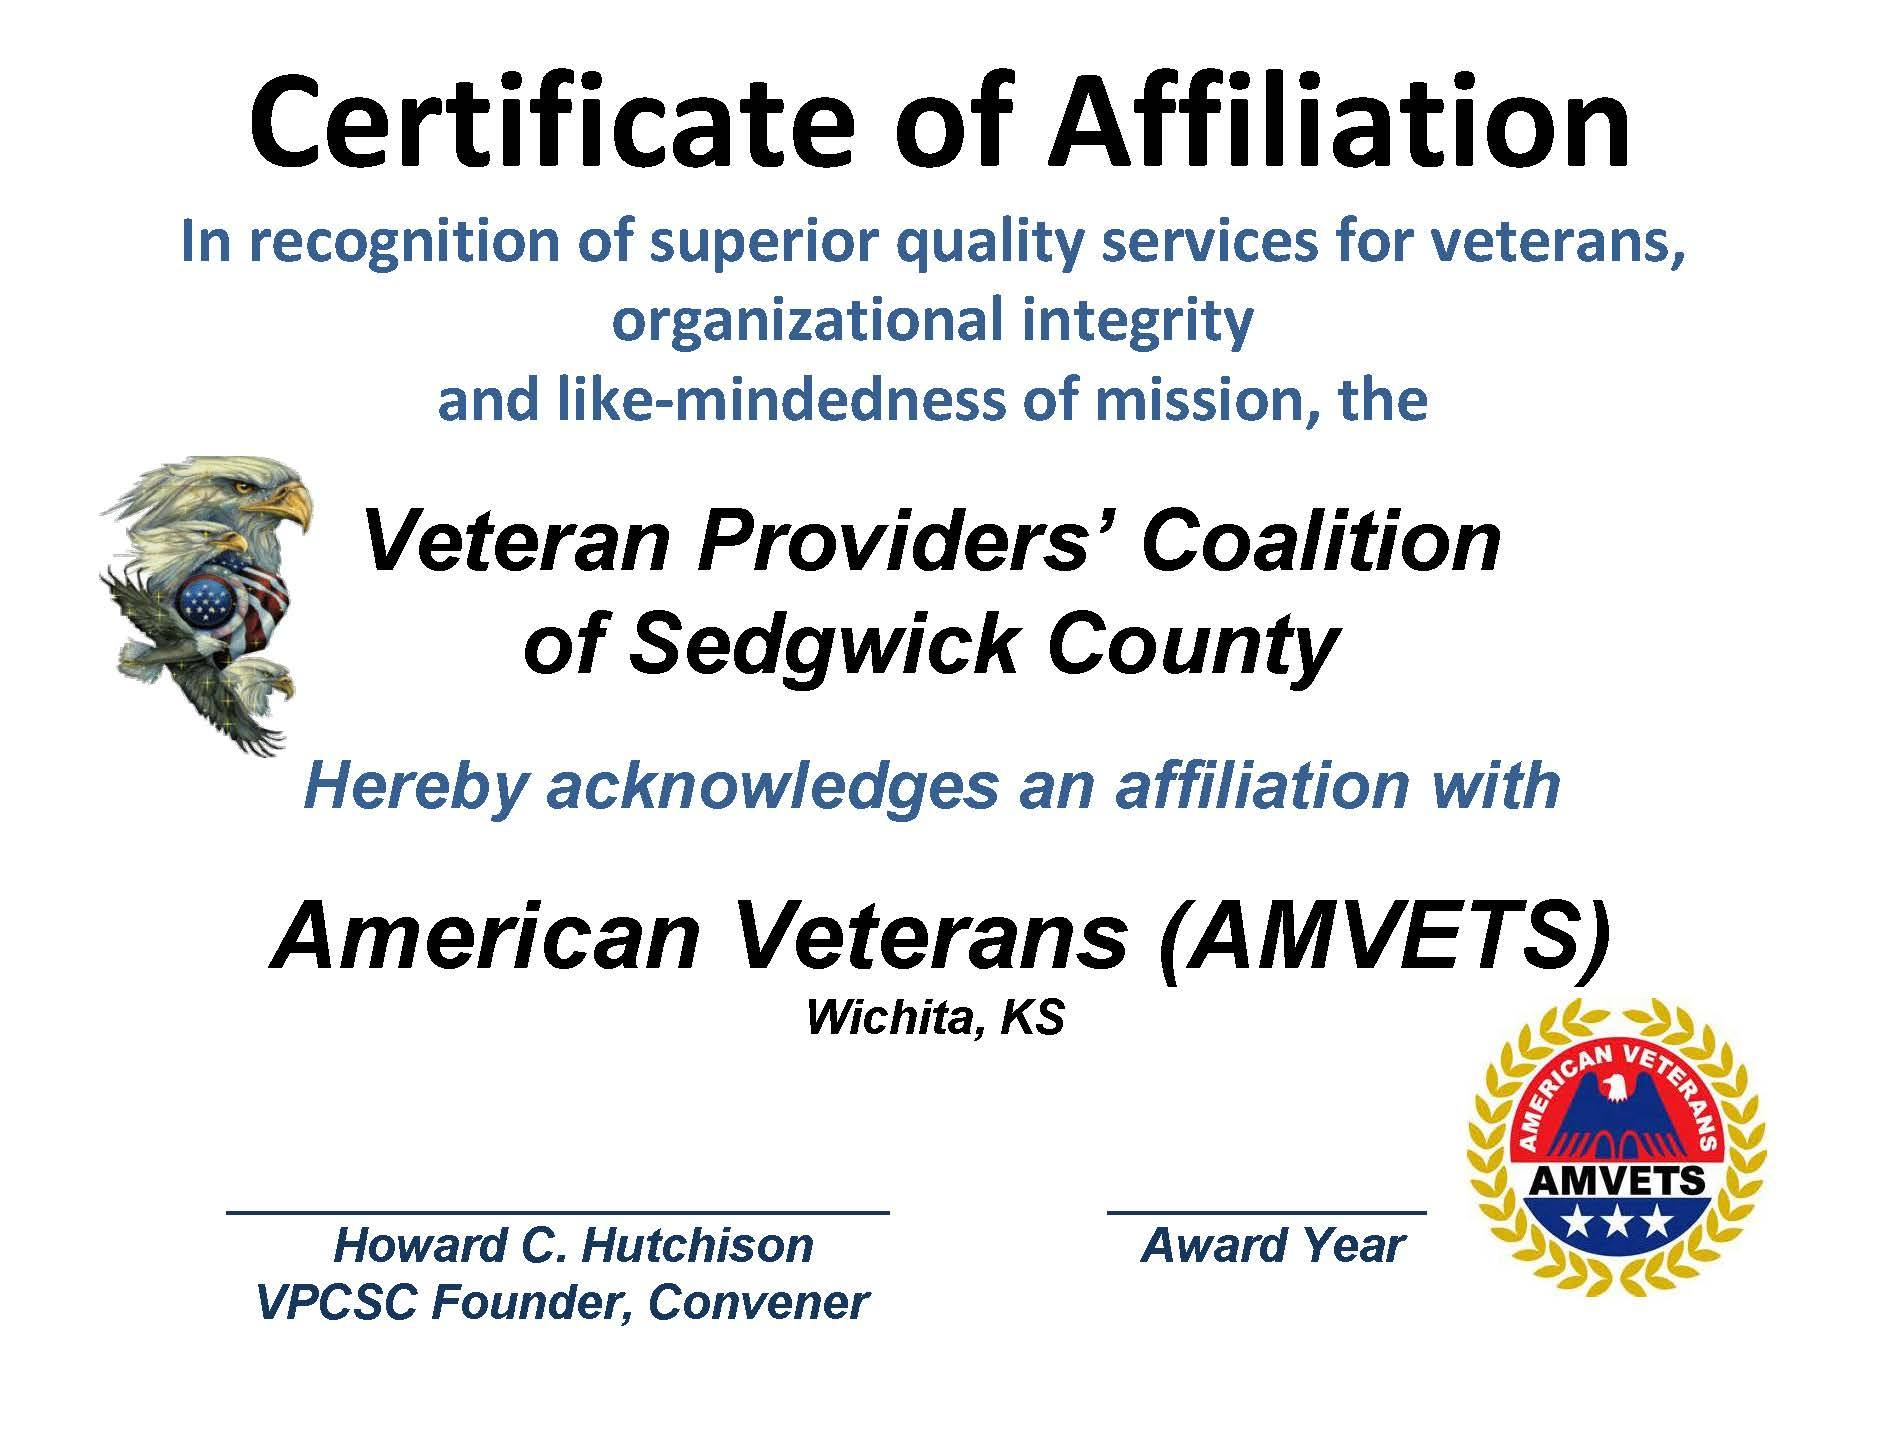 AFFILIATION - CERT. AMVETS 2015